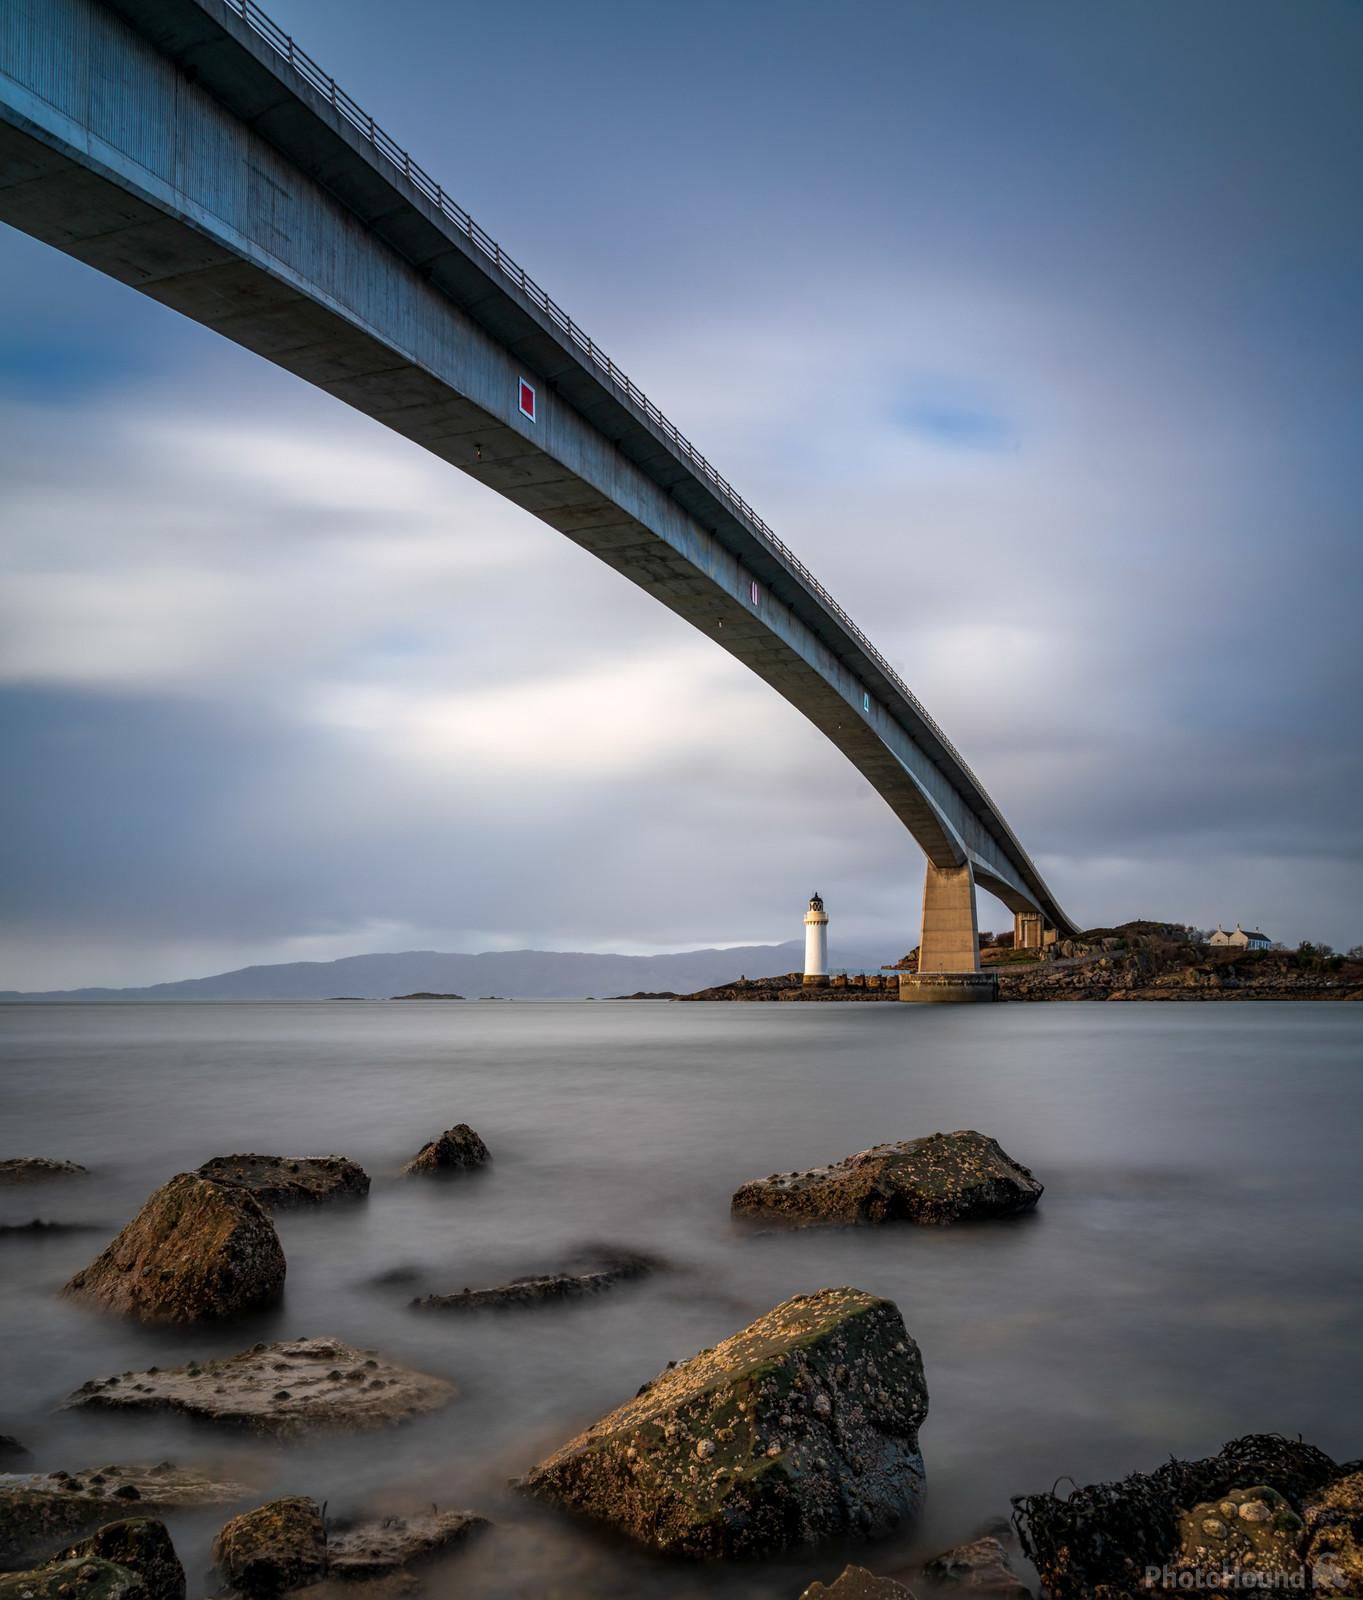 The Skye Bridge captured from under the bridge on the island side near Kyleakin village.